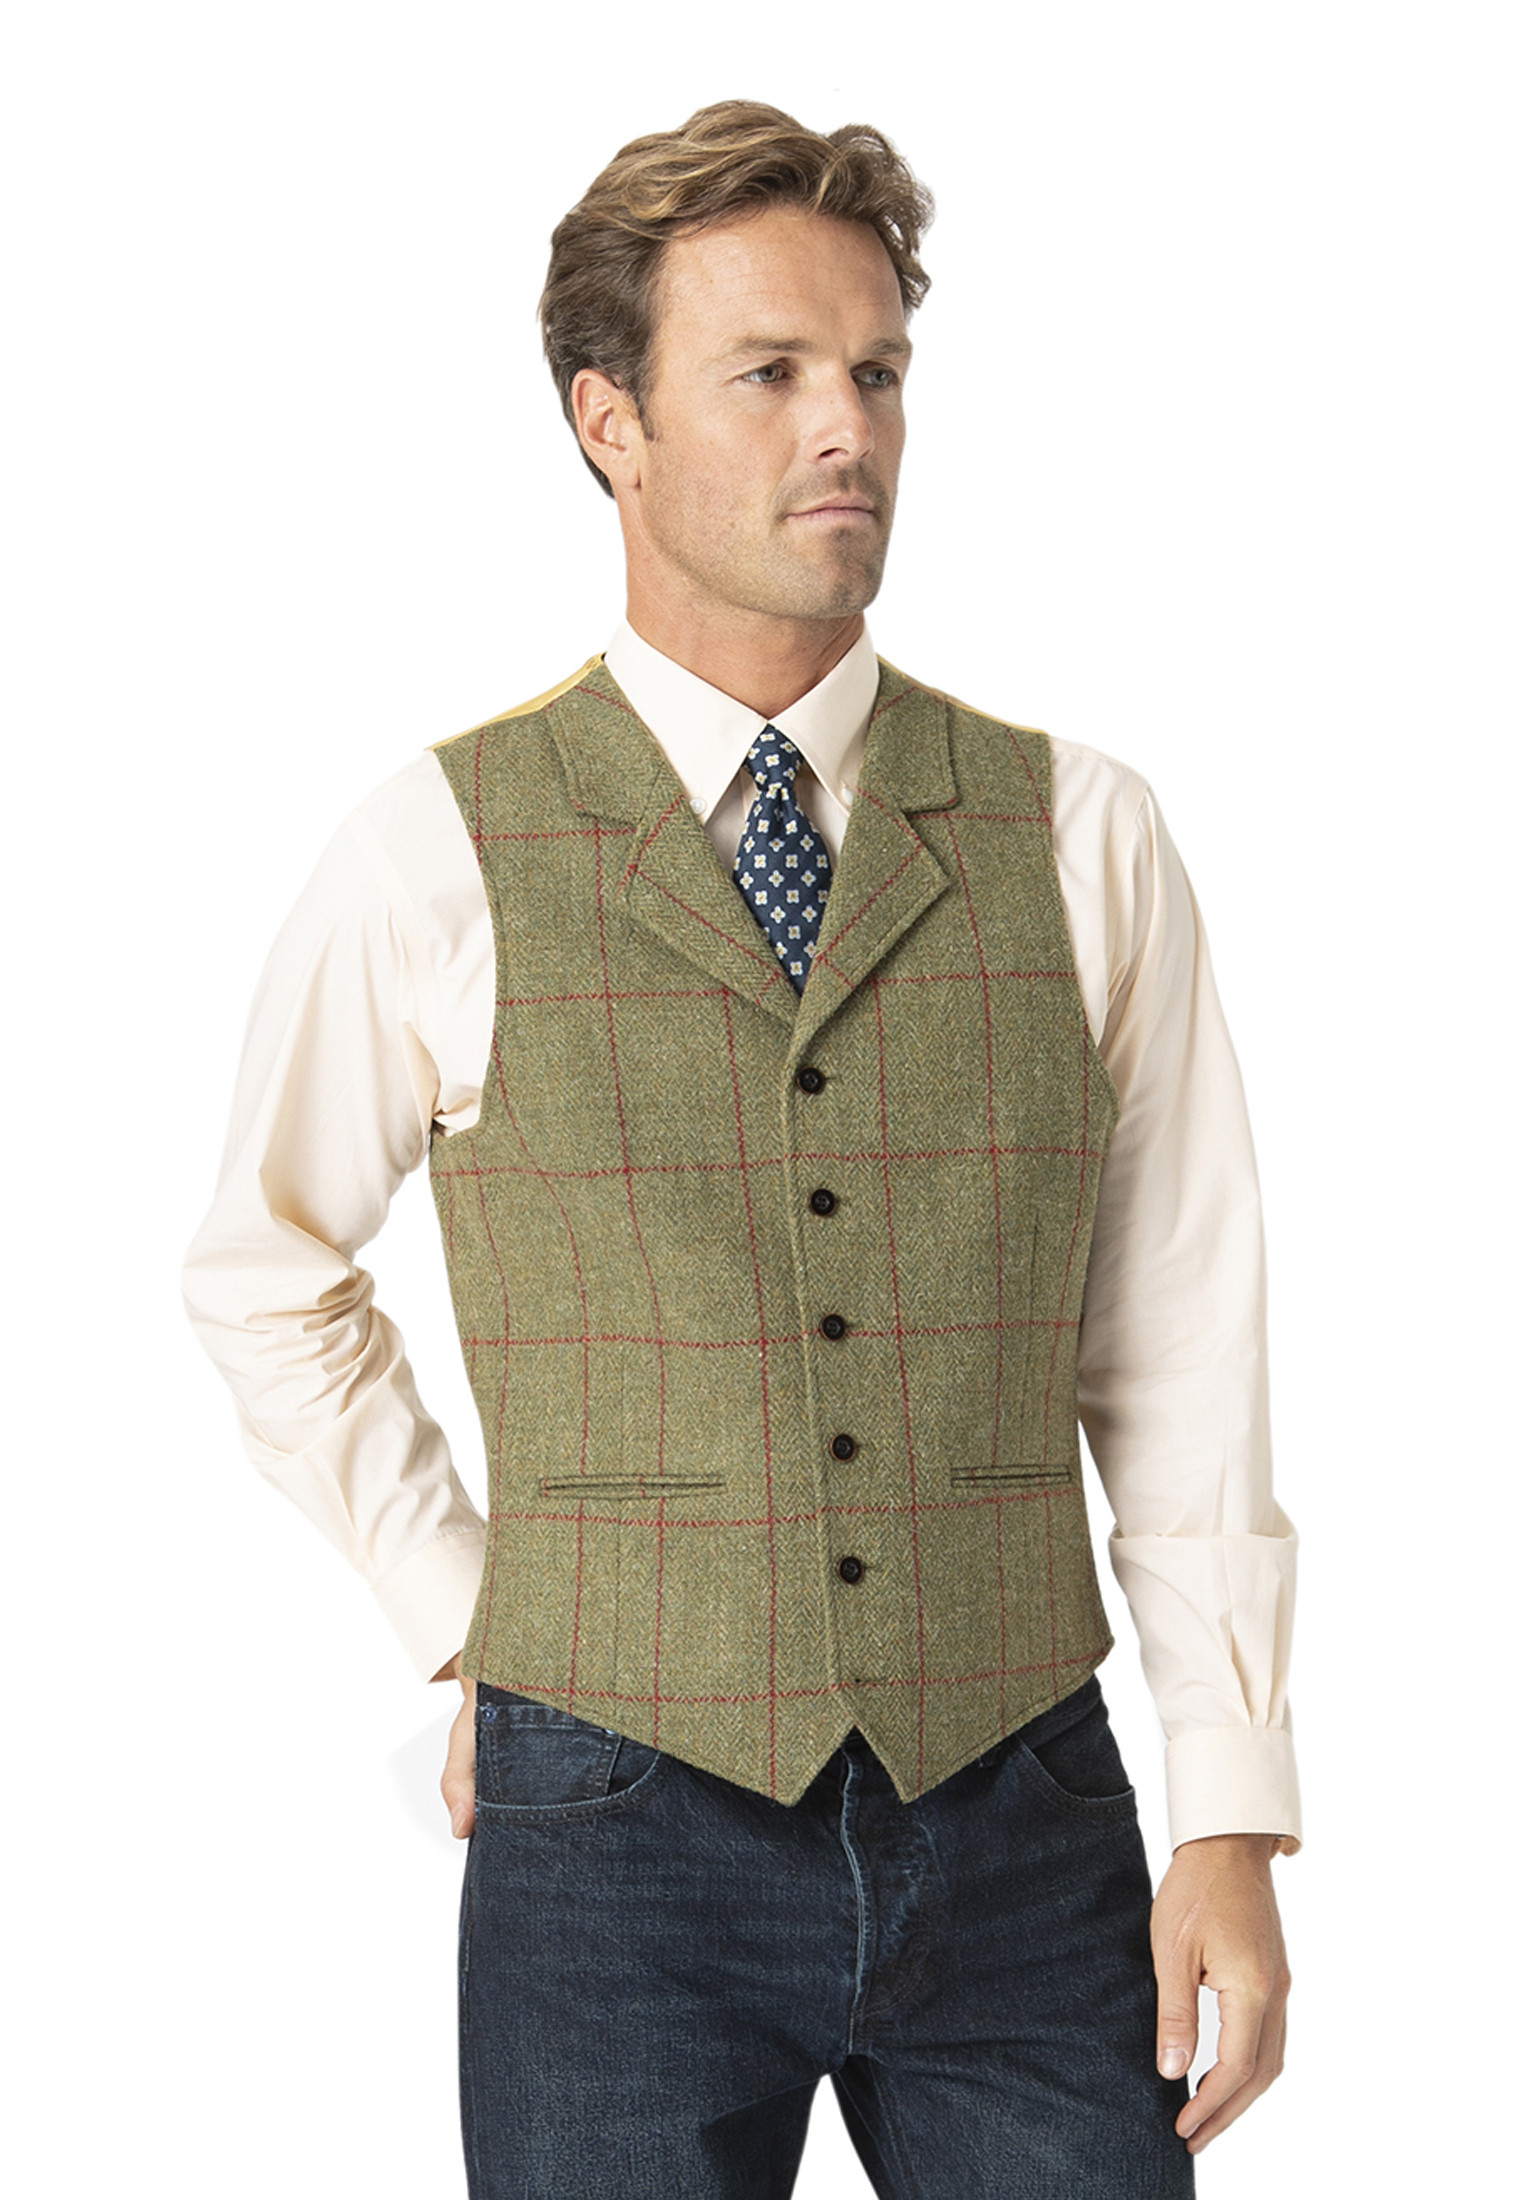 Valtos Harris Tweed Tailored Fit Jacket - Optional Waistcoat Available